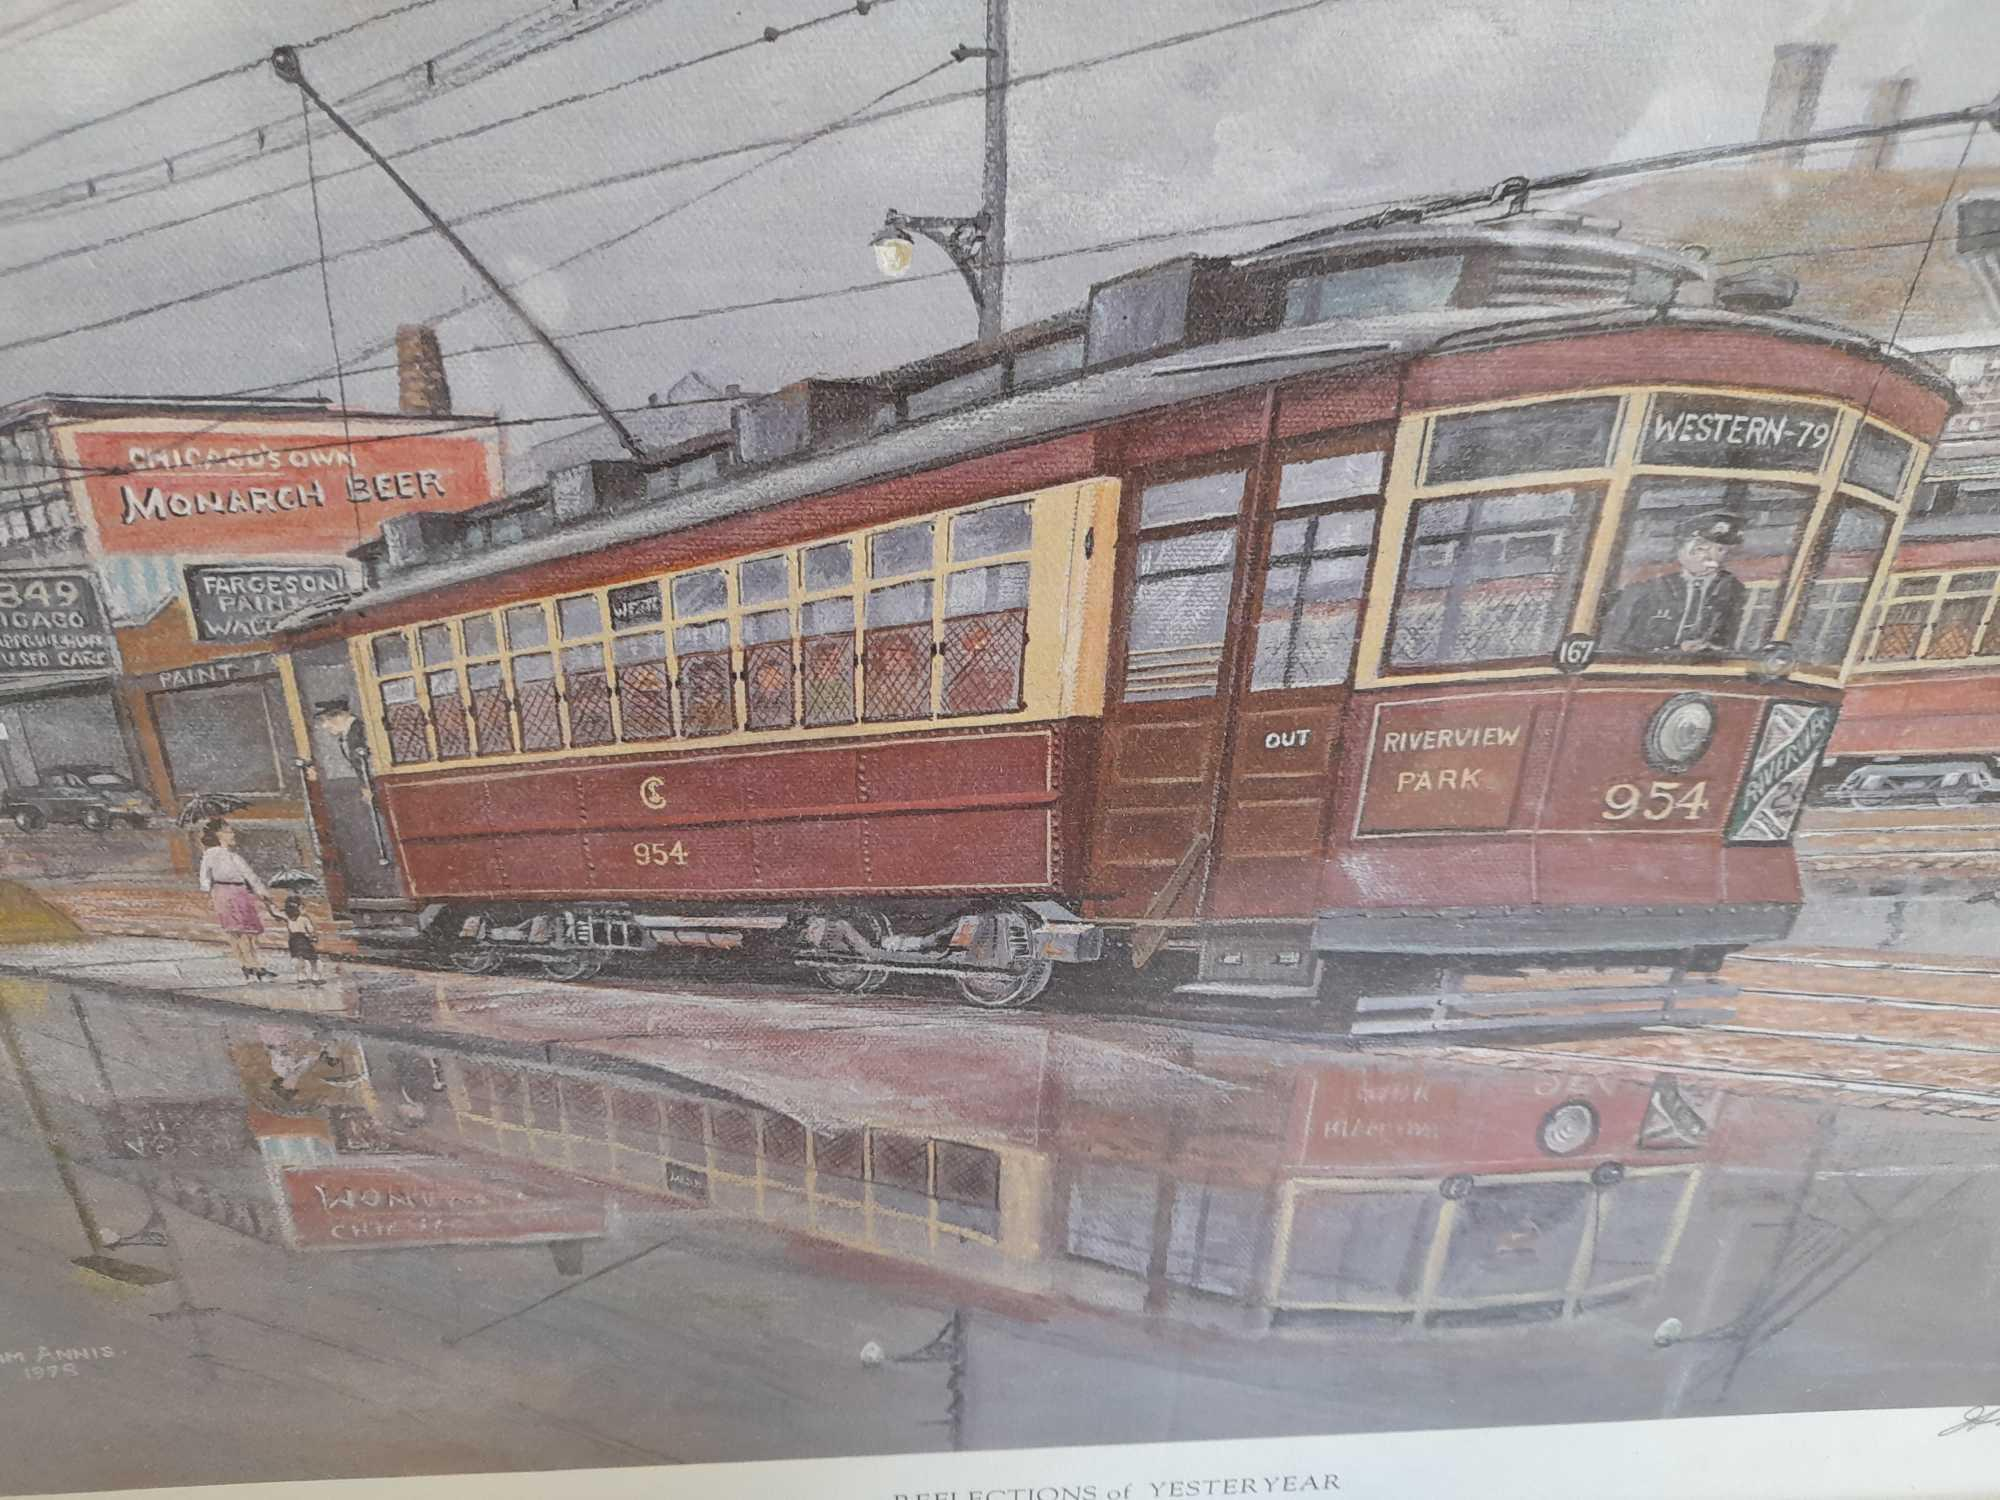 PRINT-REFLECTIONS OF YESTERYEAR CHICAGO - Image 2 of 5